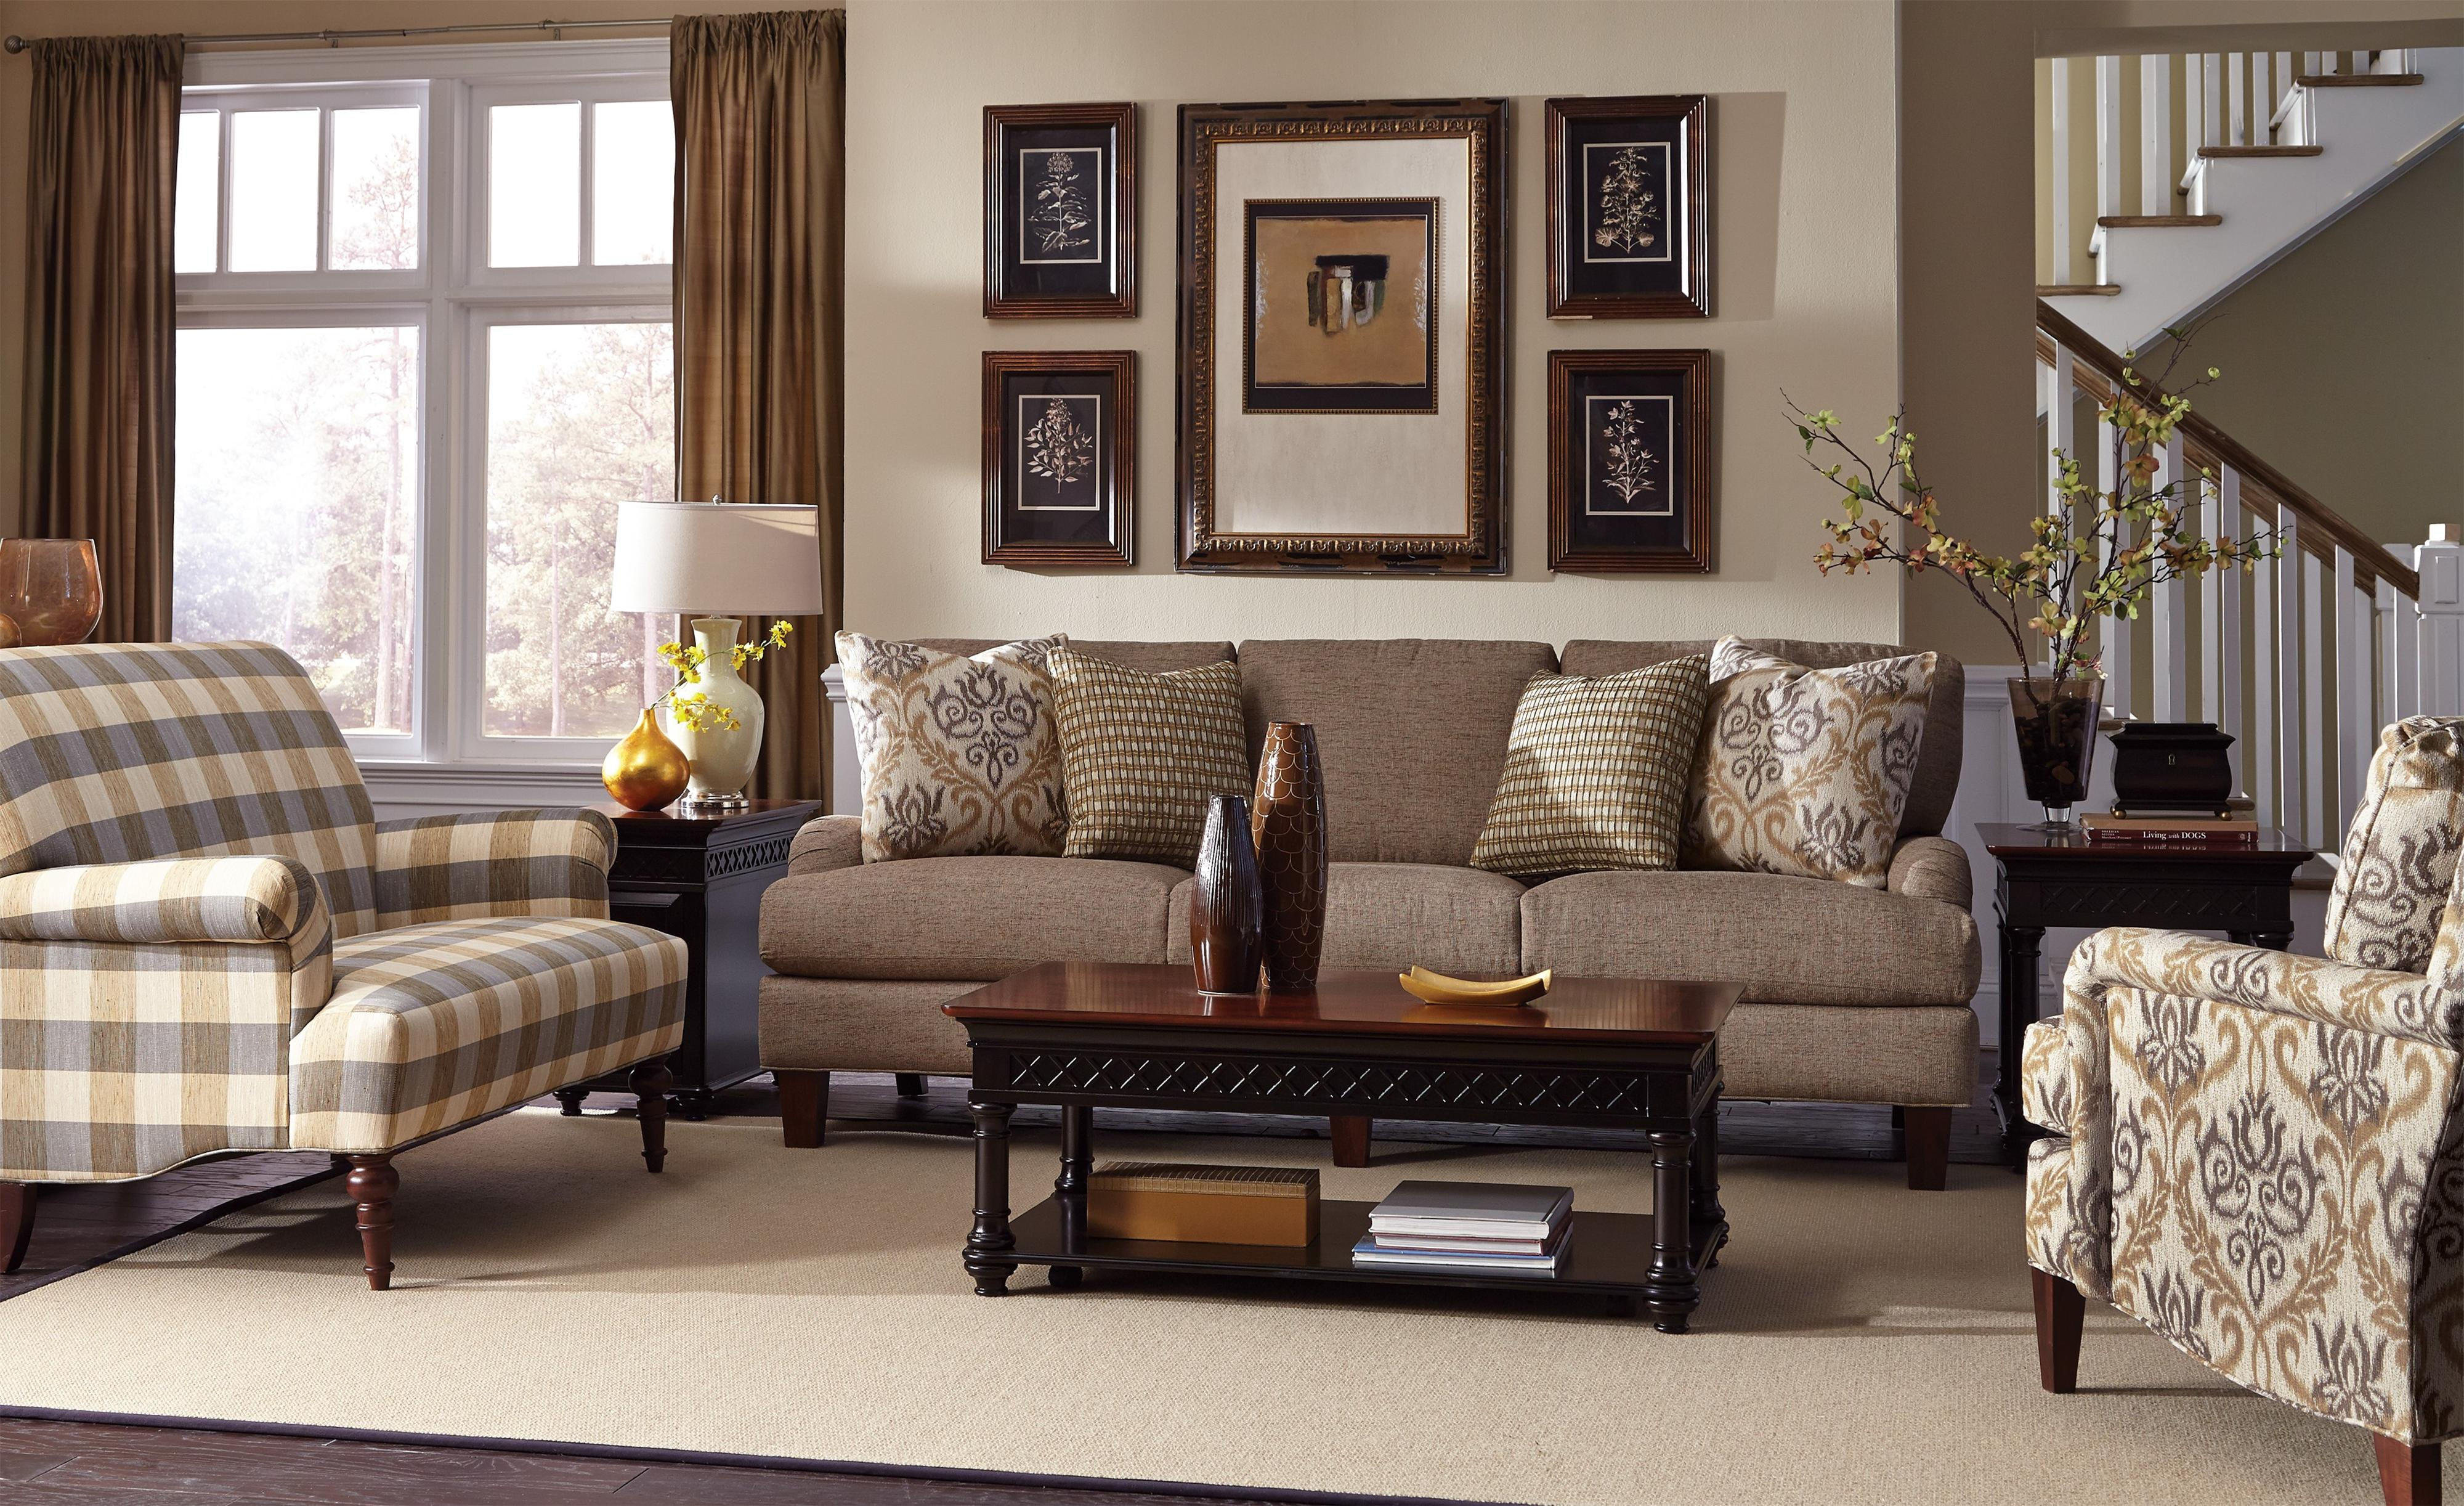 Craftmaster 7430 Stationary Living Room Group Boulevard Home Furnishings Upholstery Group